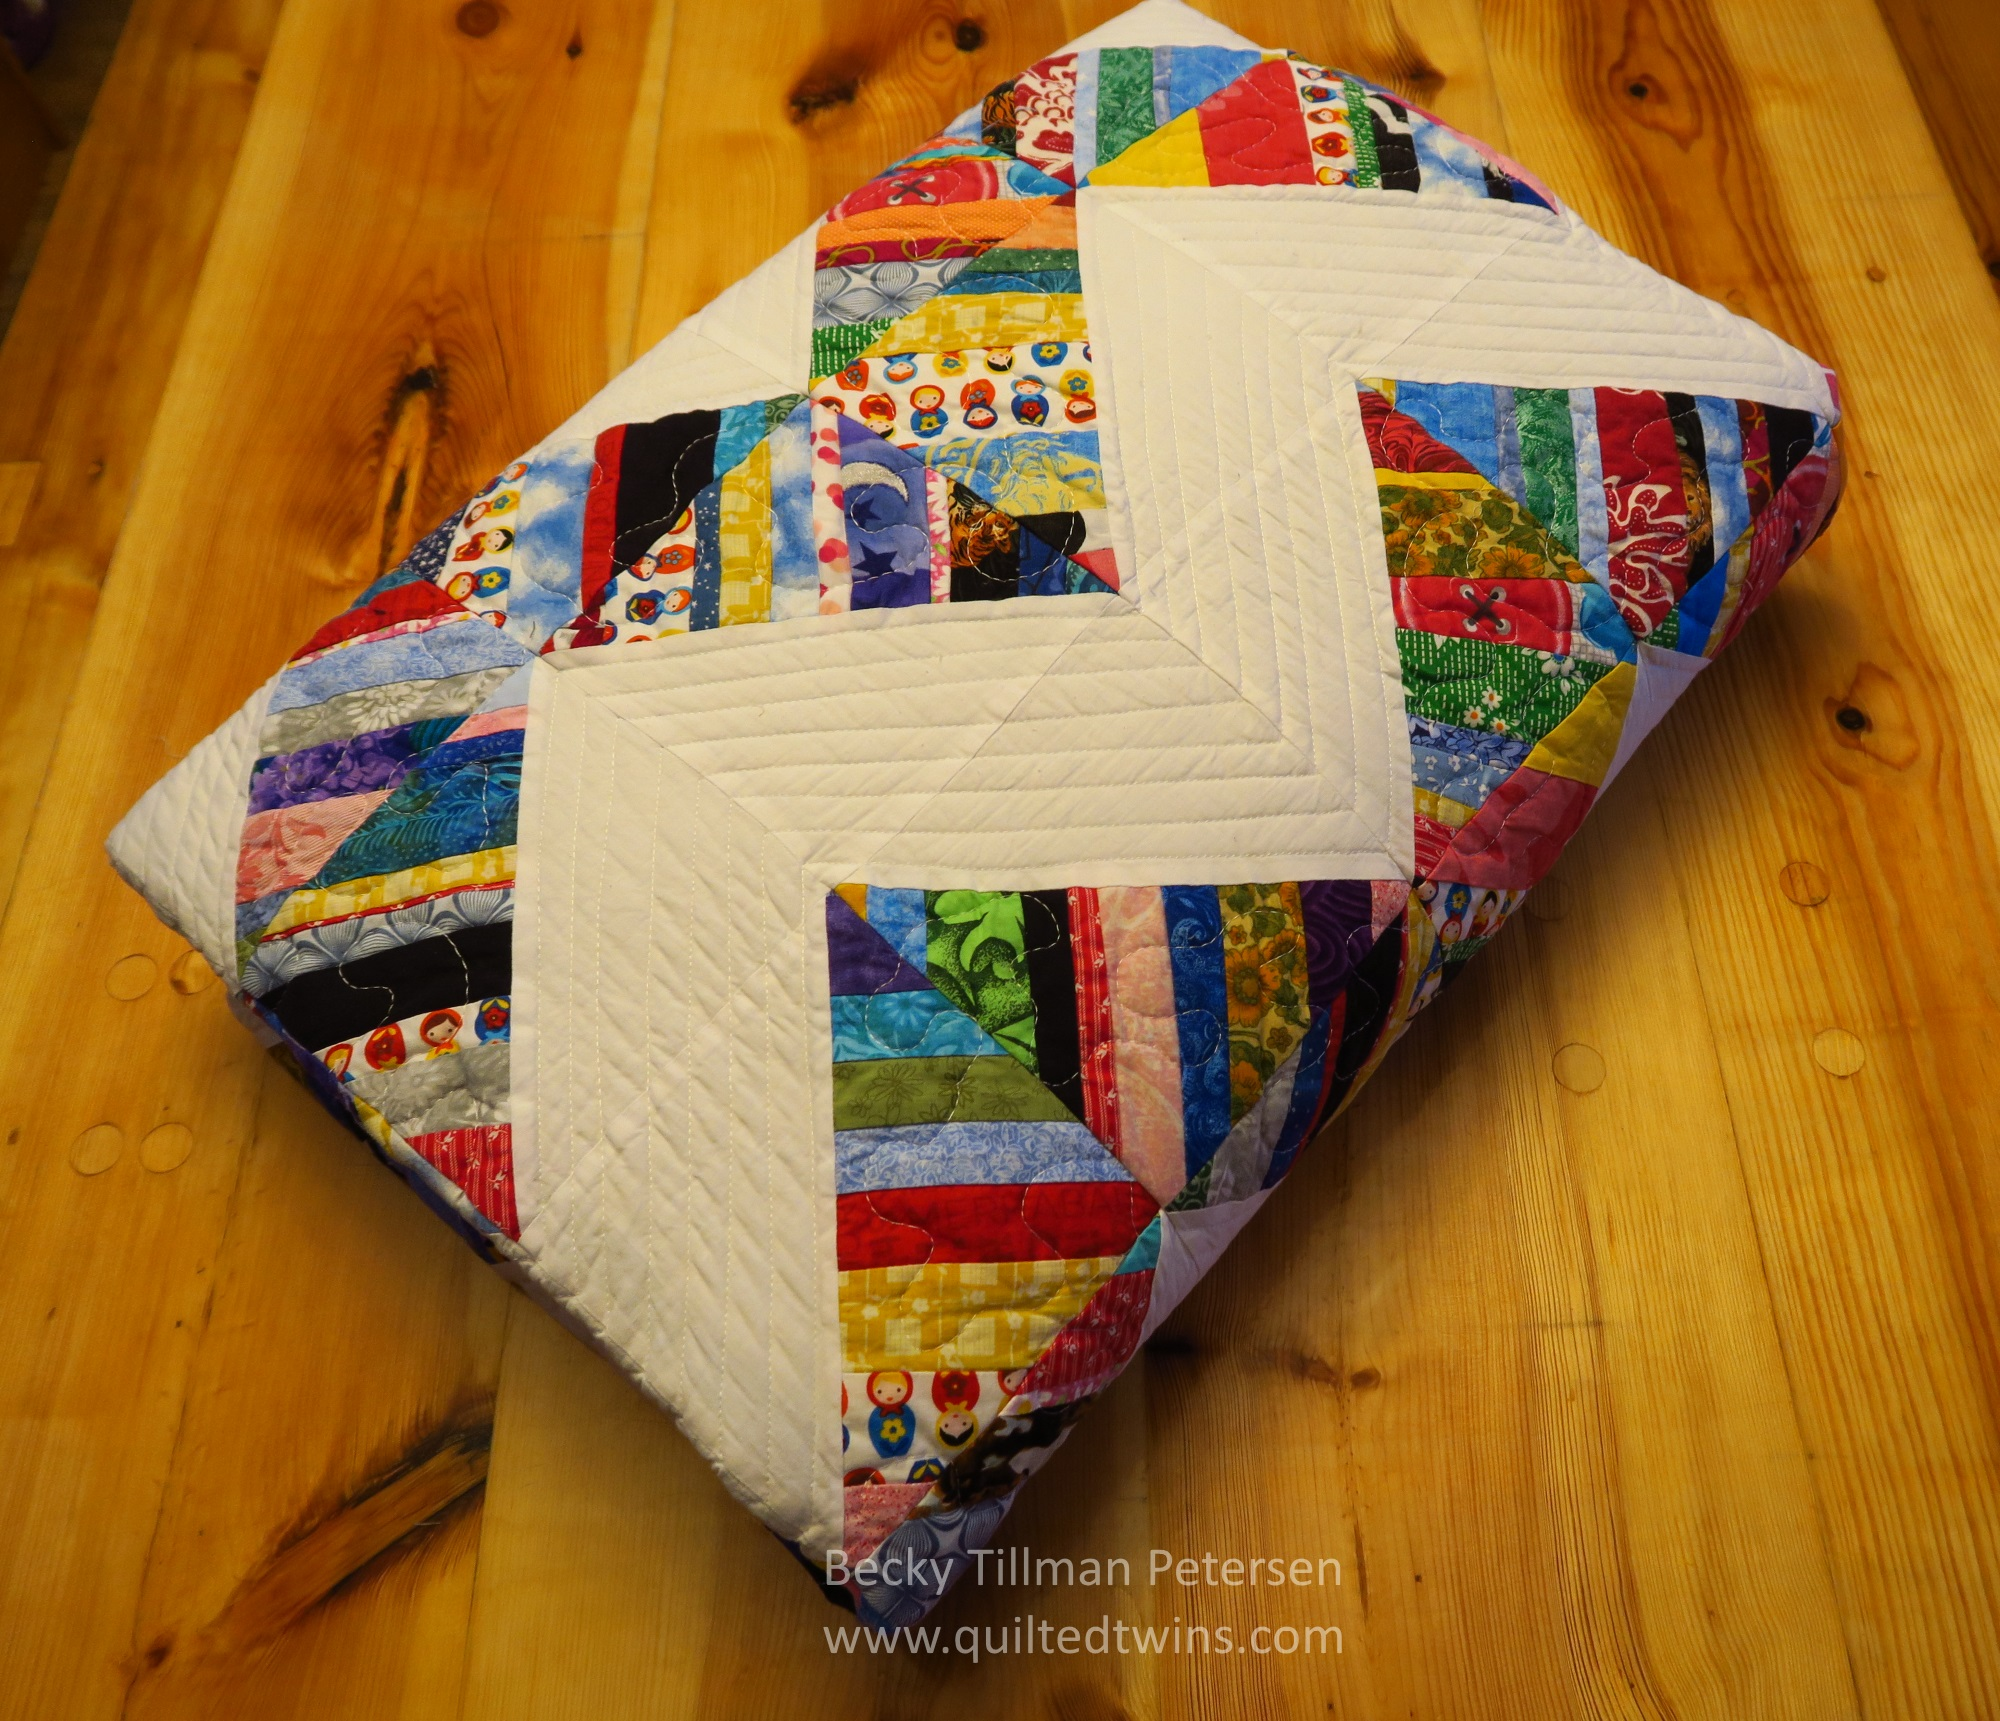 The quilt roll